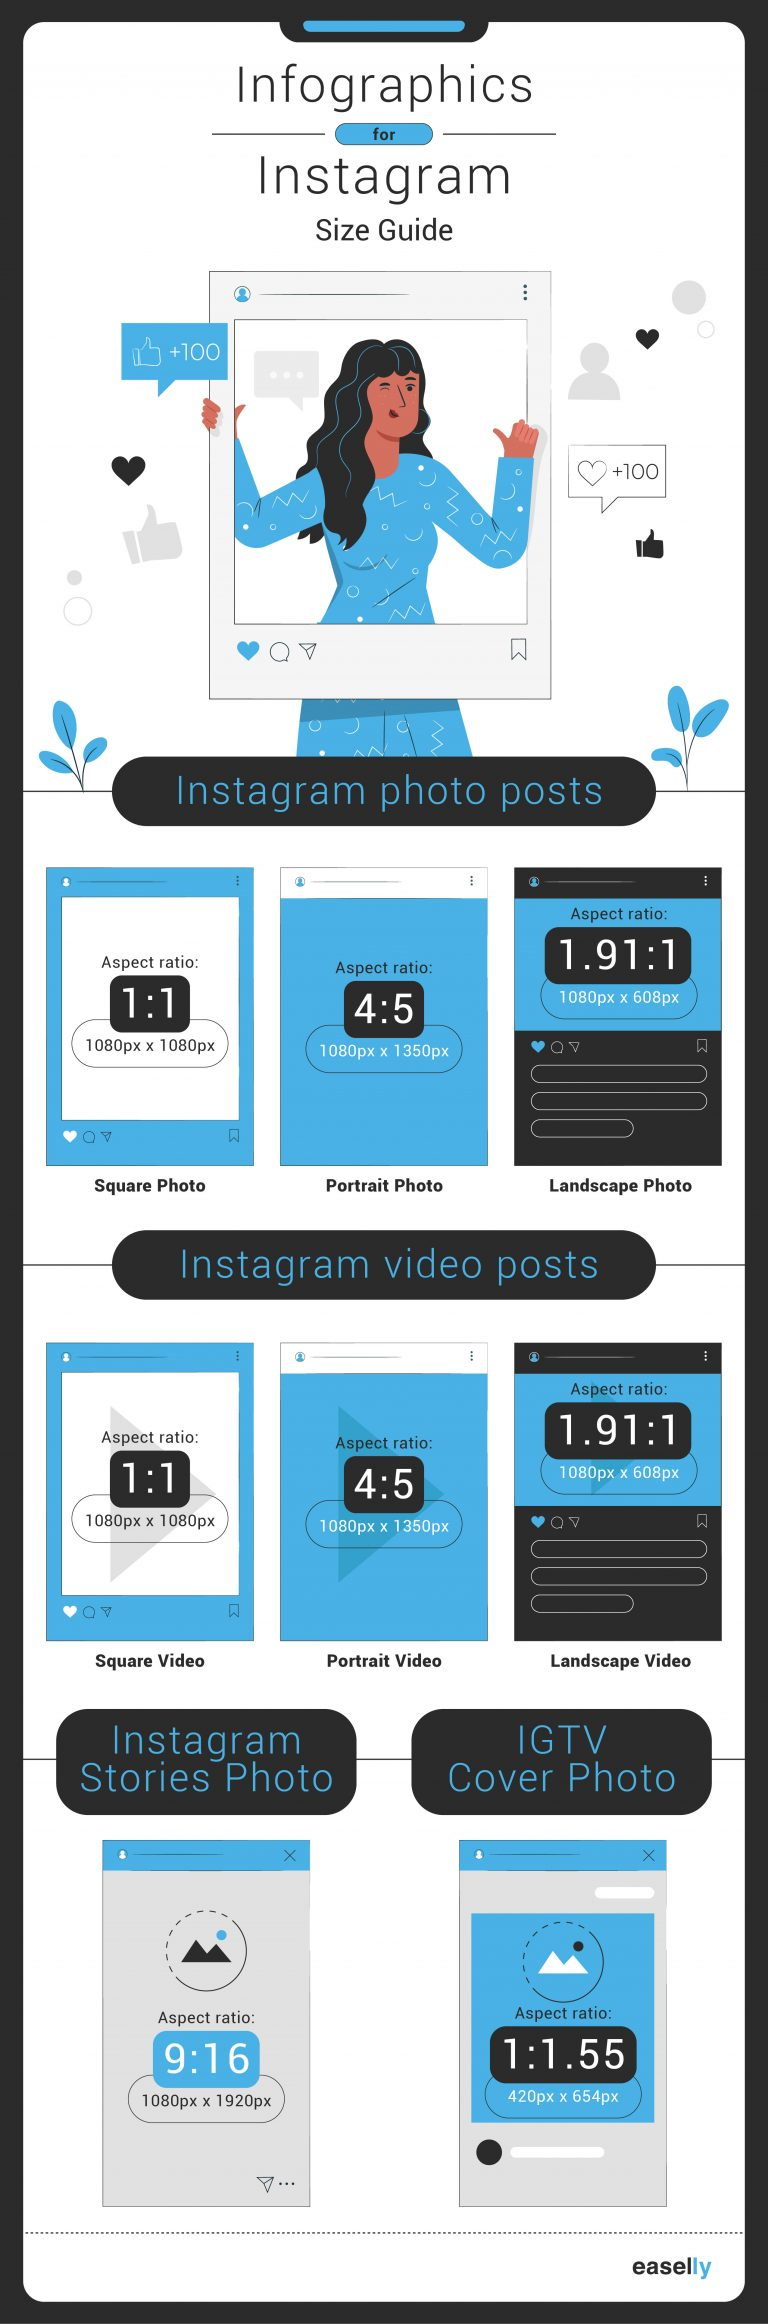 infographics for instagram size guide